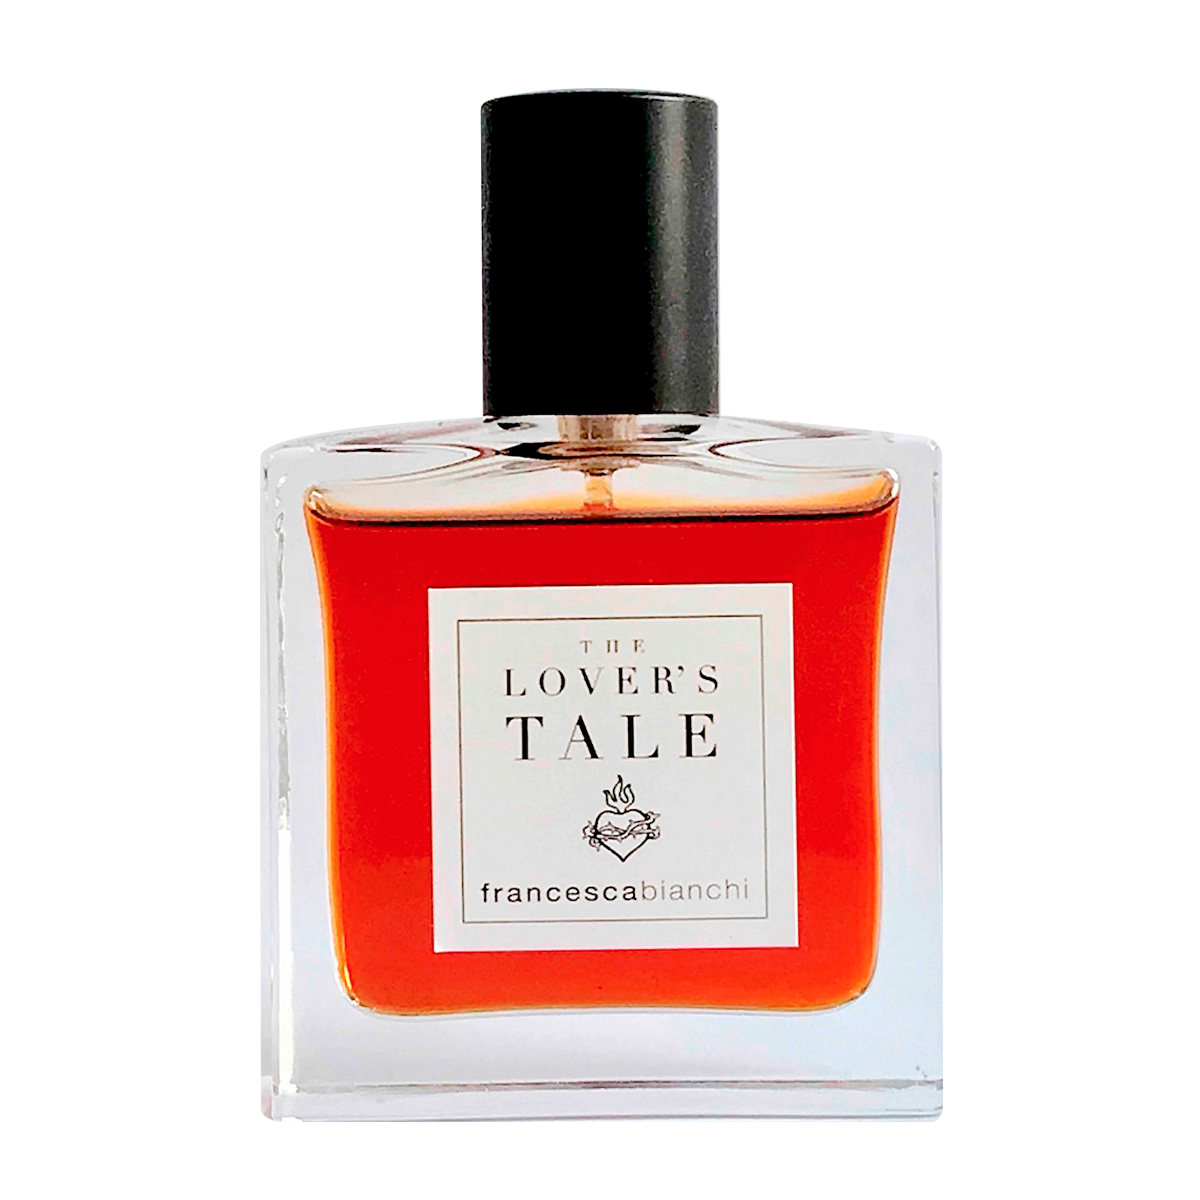 The Lover's Tale - Francesca Bianchi - EDP 30ml